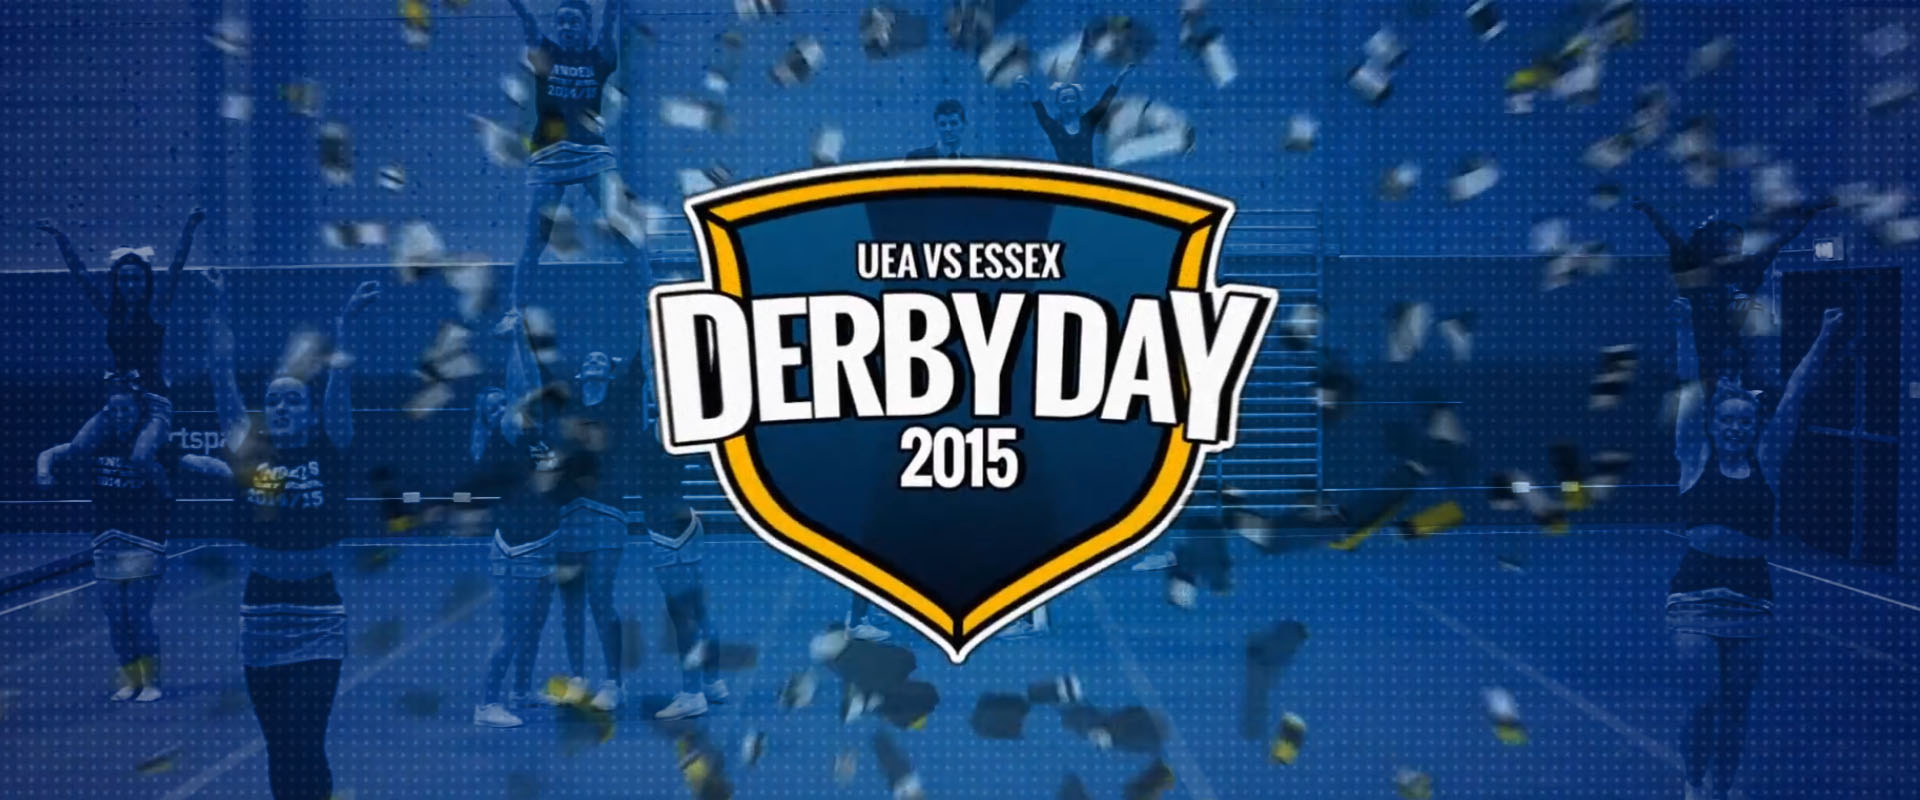 derby day uea essex taylor swift shake it off promo thumbnail